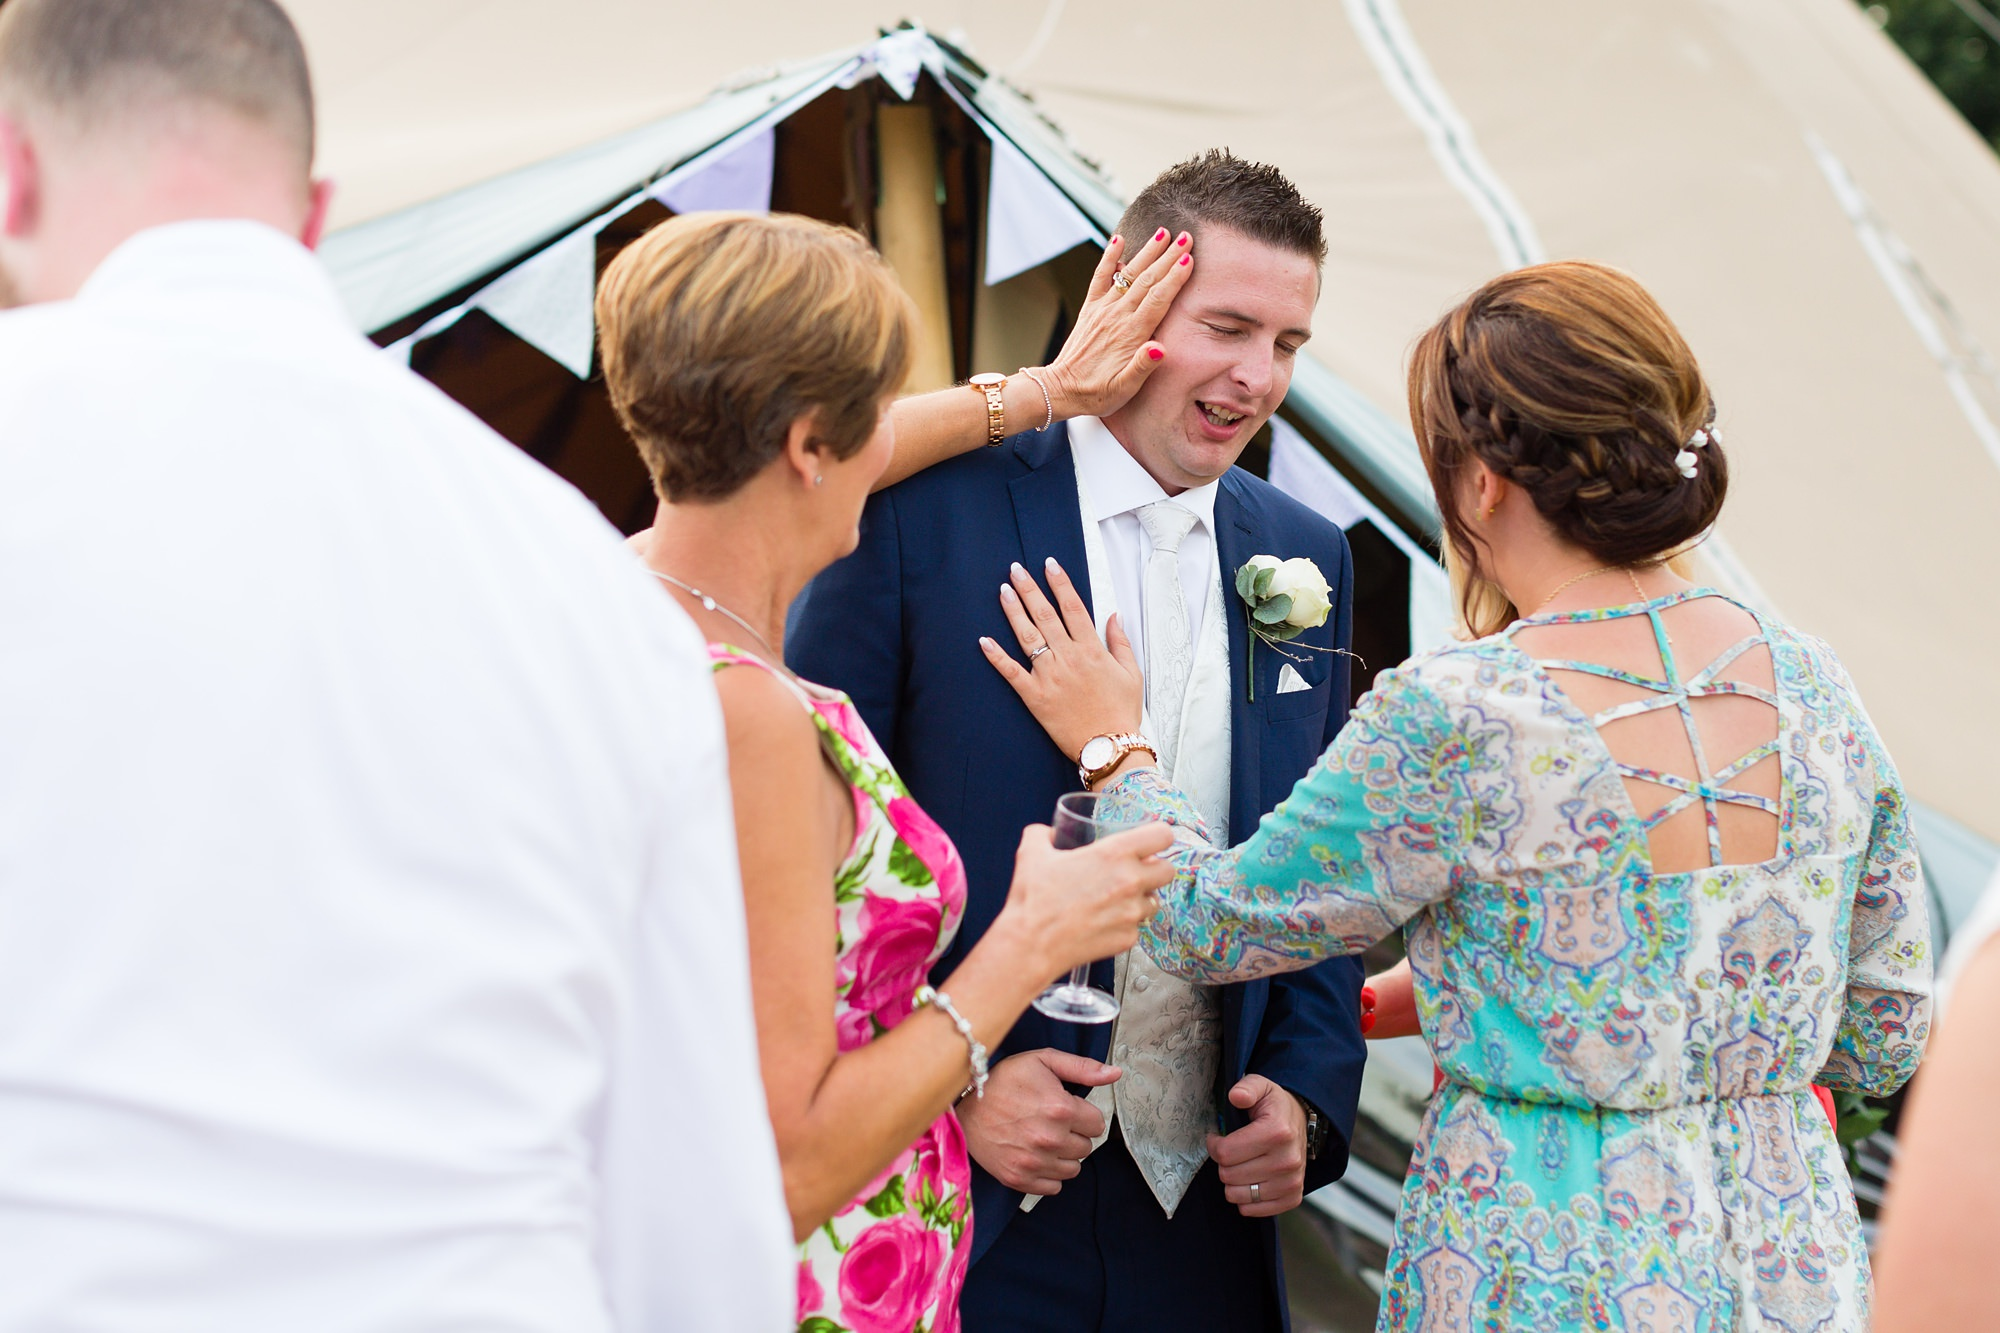 Guests having fun with groom at Yorkshire wedding